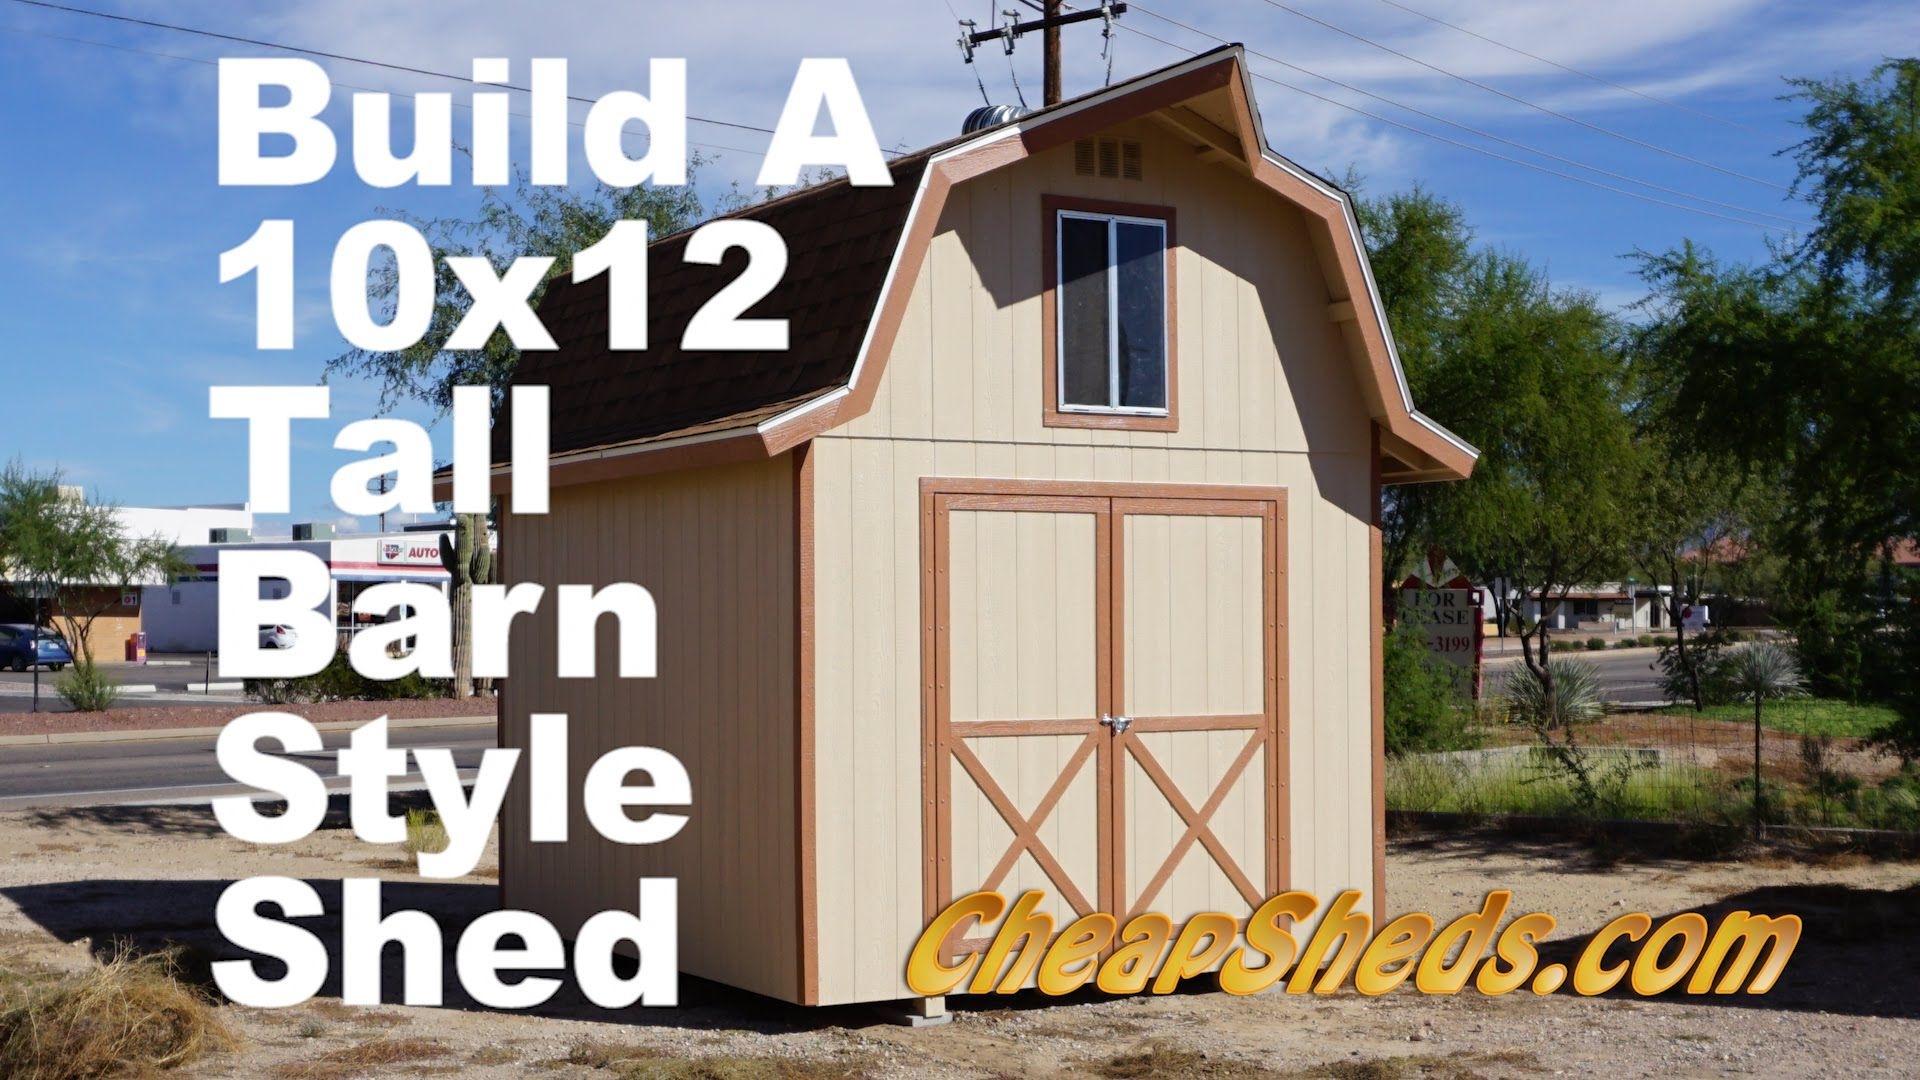 Build A 10x12 Tall Barn Style Shed With Loft Shed Shed Plans Building A Shed